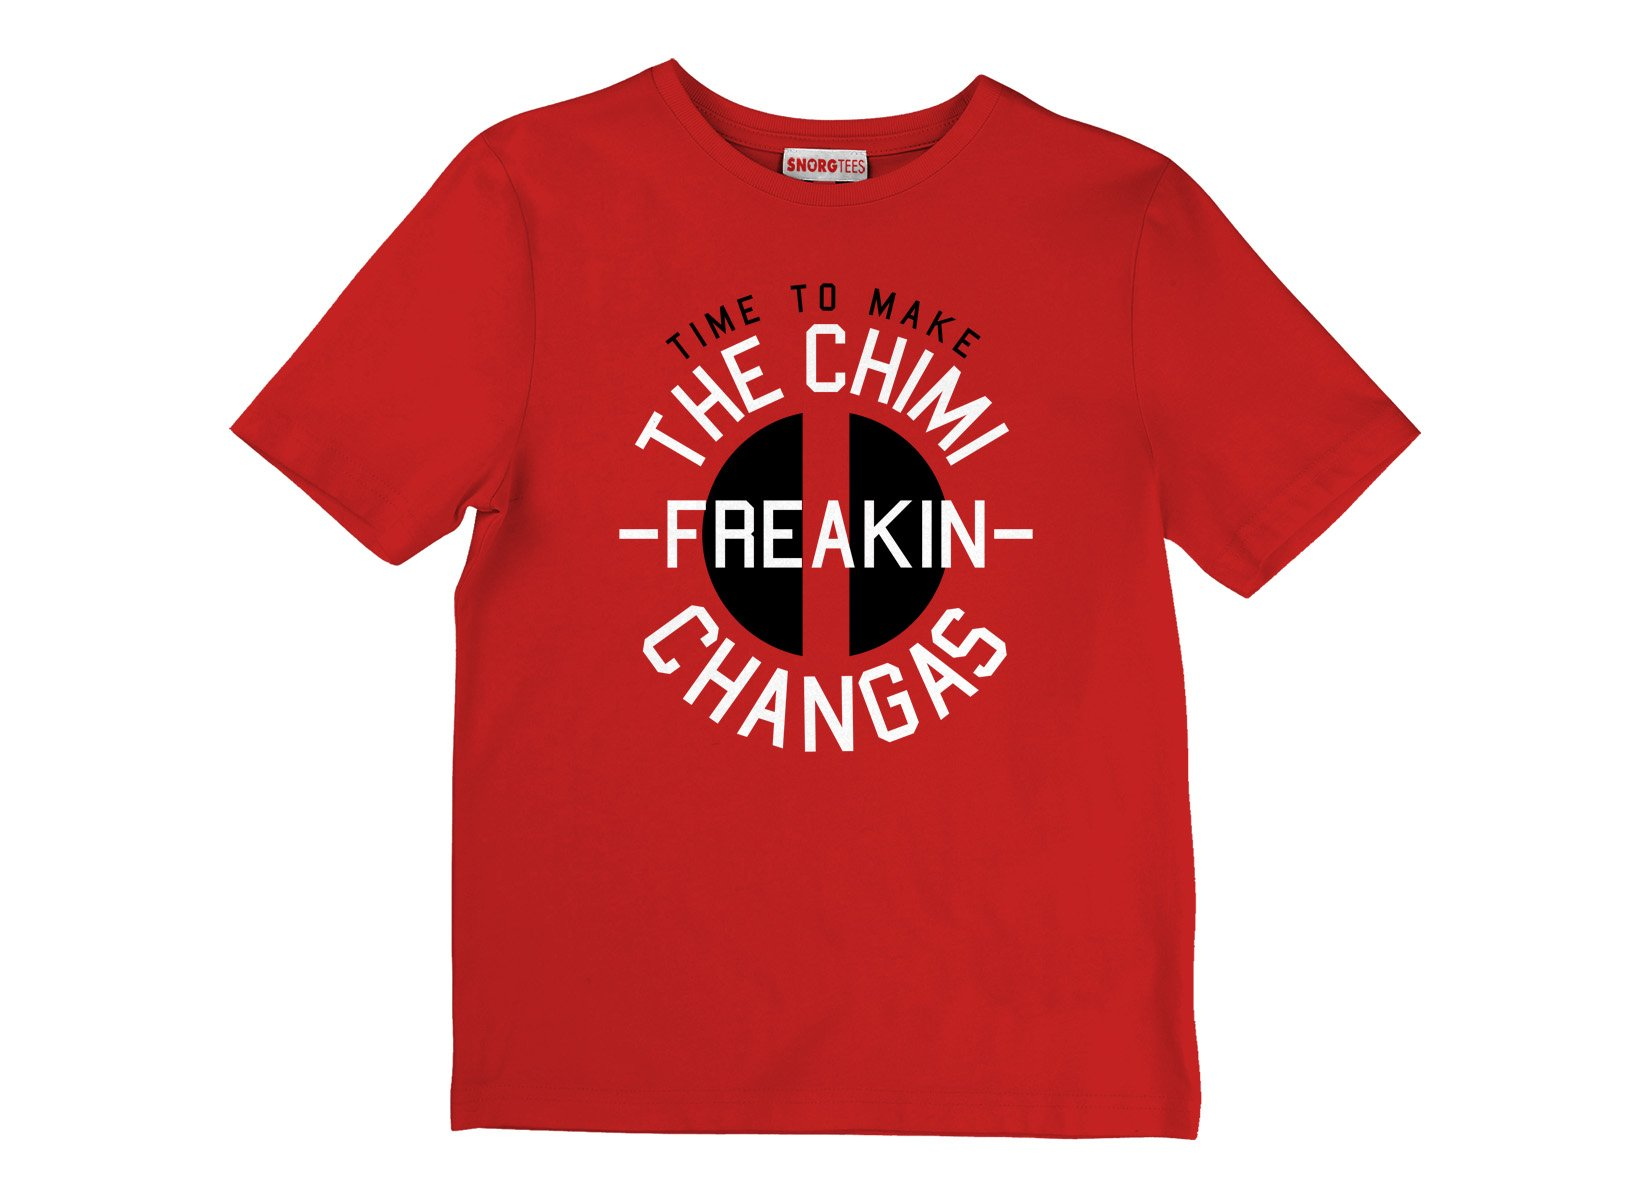 Chimi-freakin-changas on Kids T-Shirt